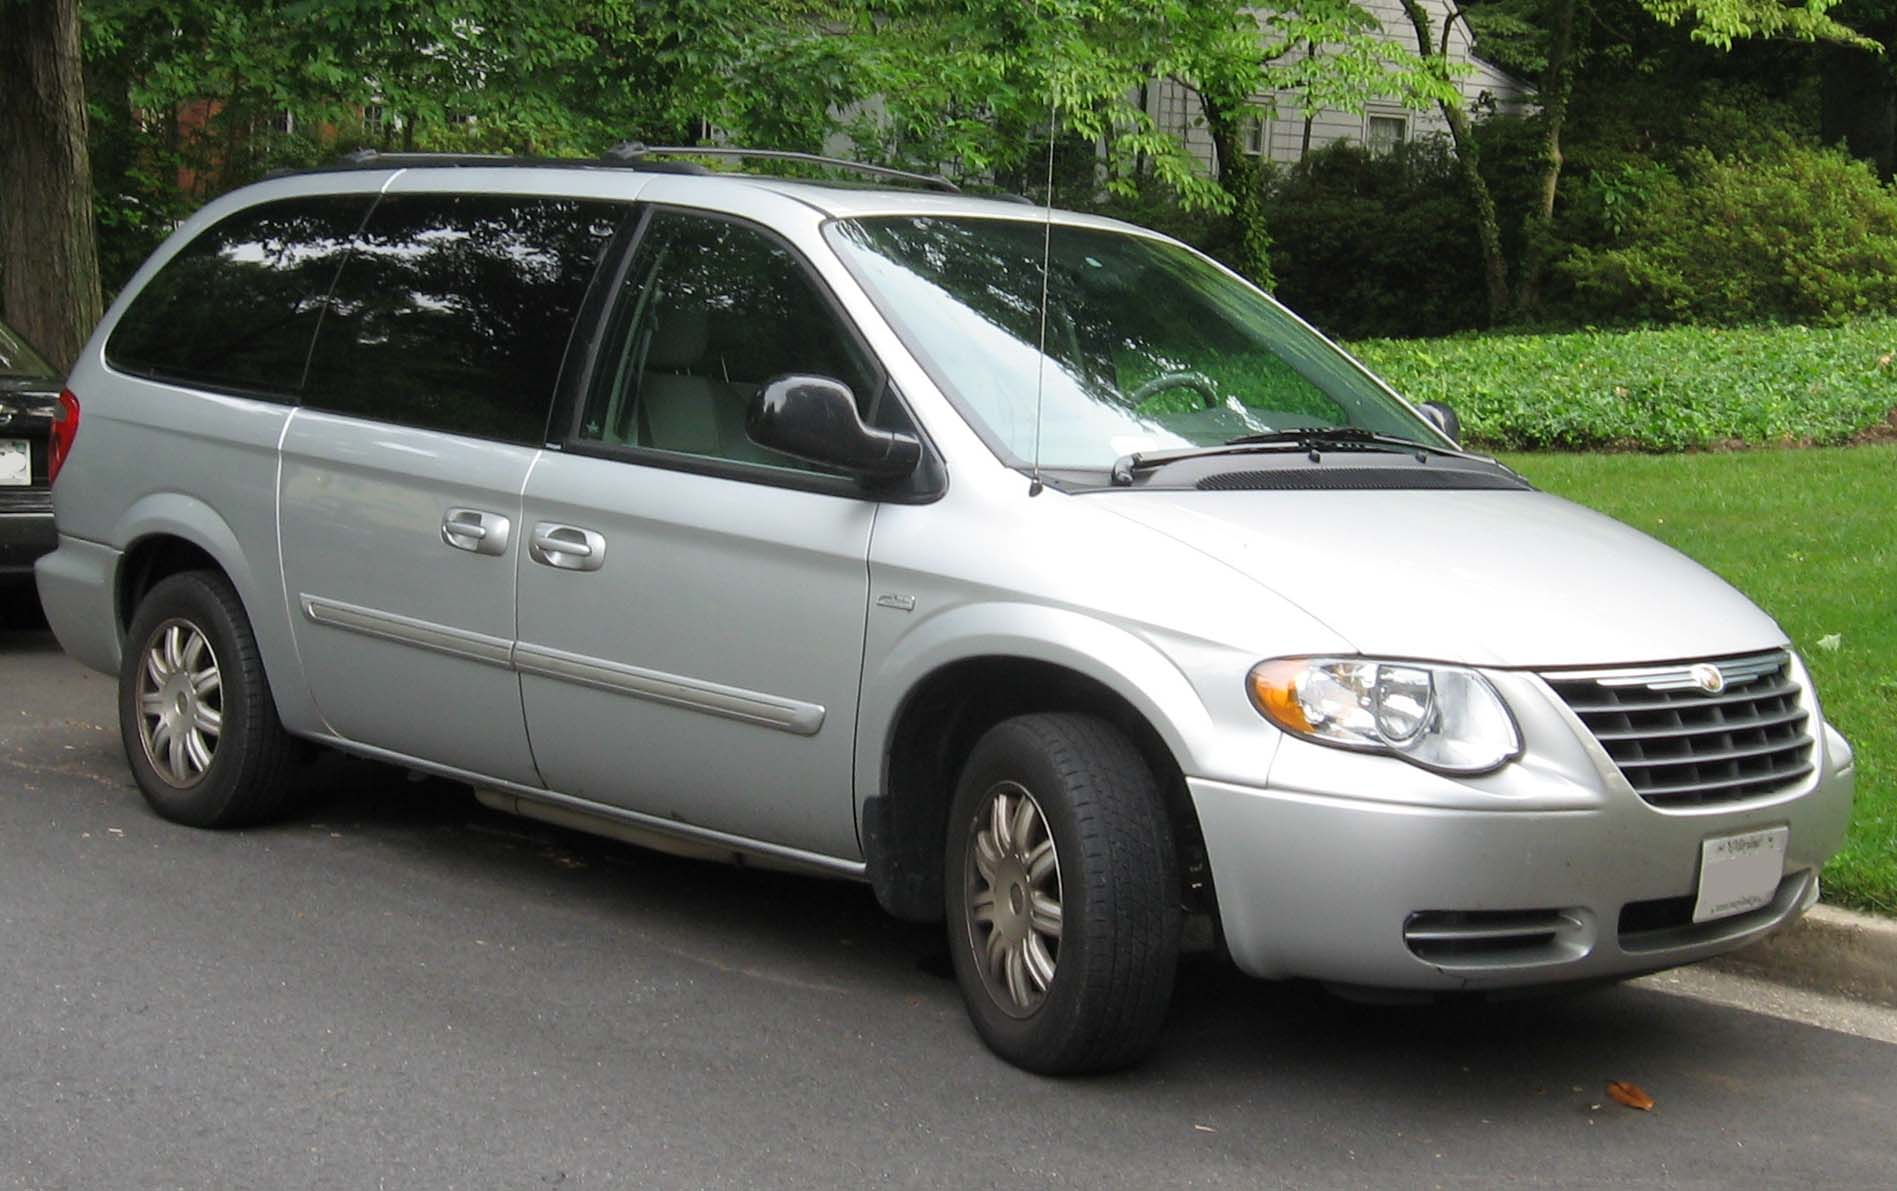 2007 chrysler town and country information and photos momentcar. Cars Review. Best American Auto & Cars Review